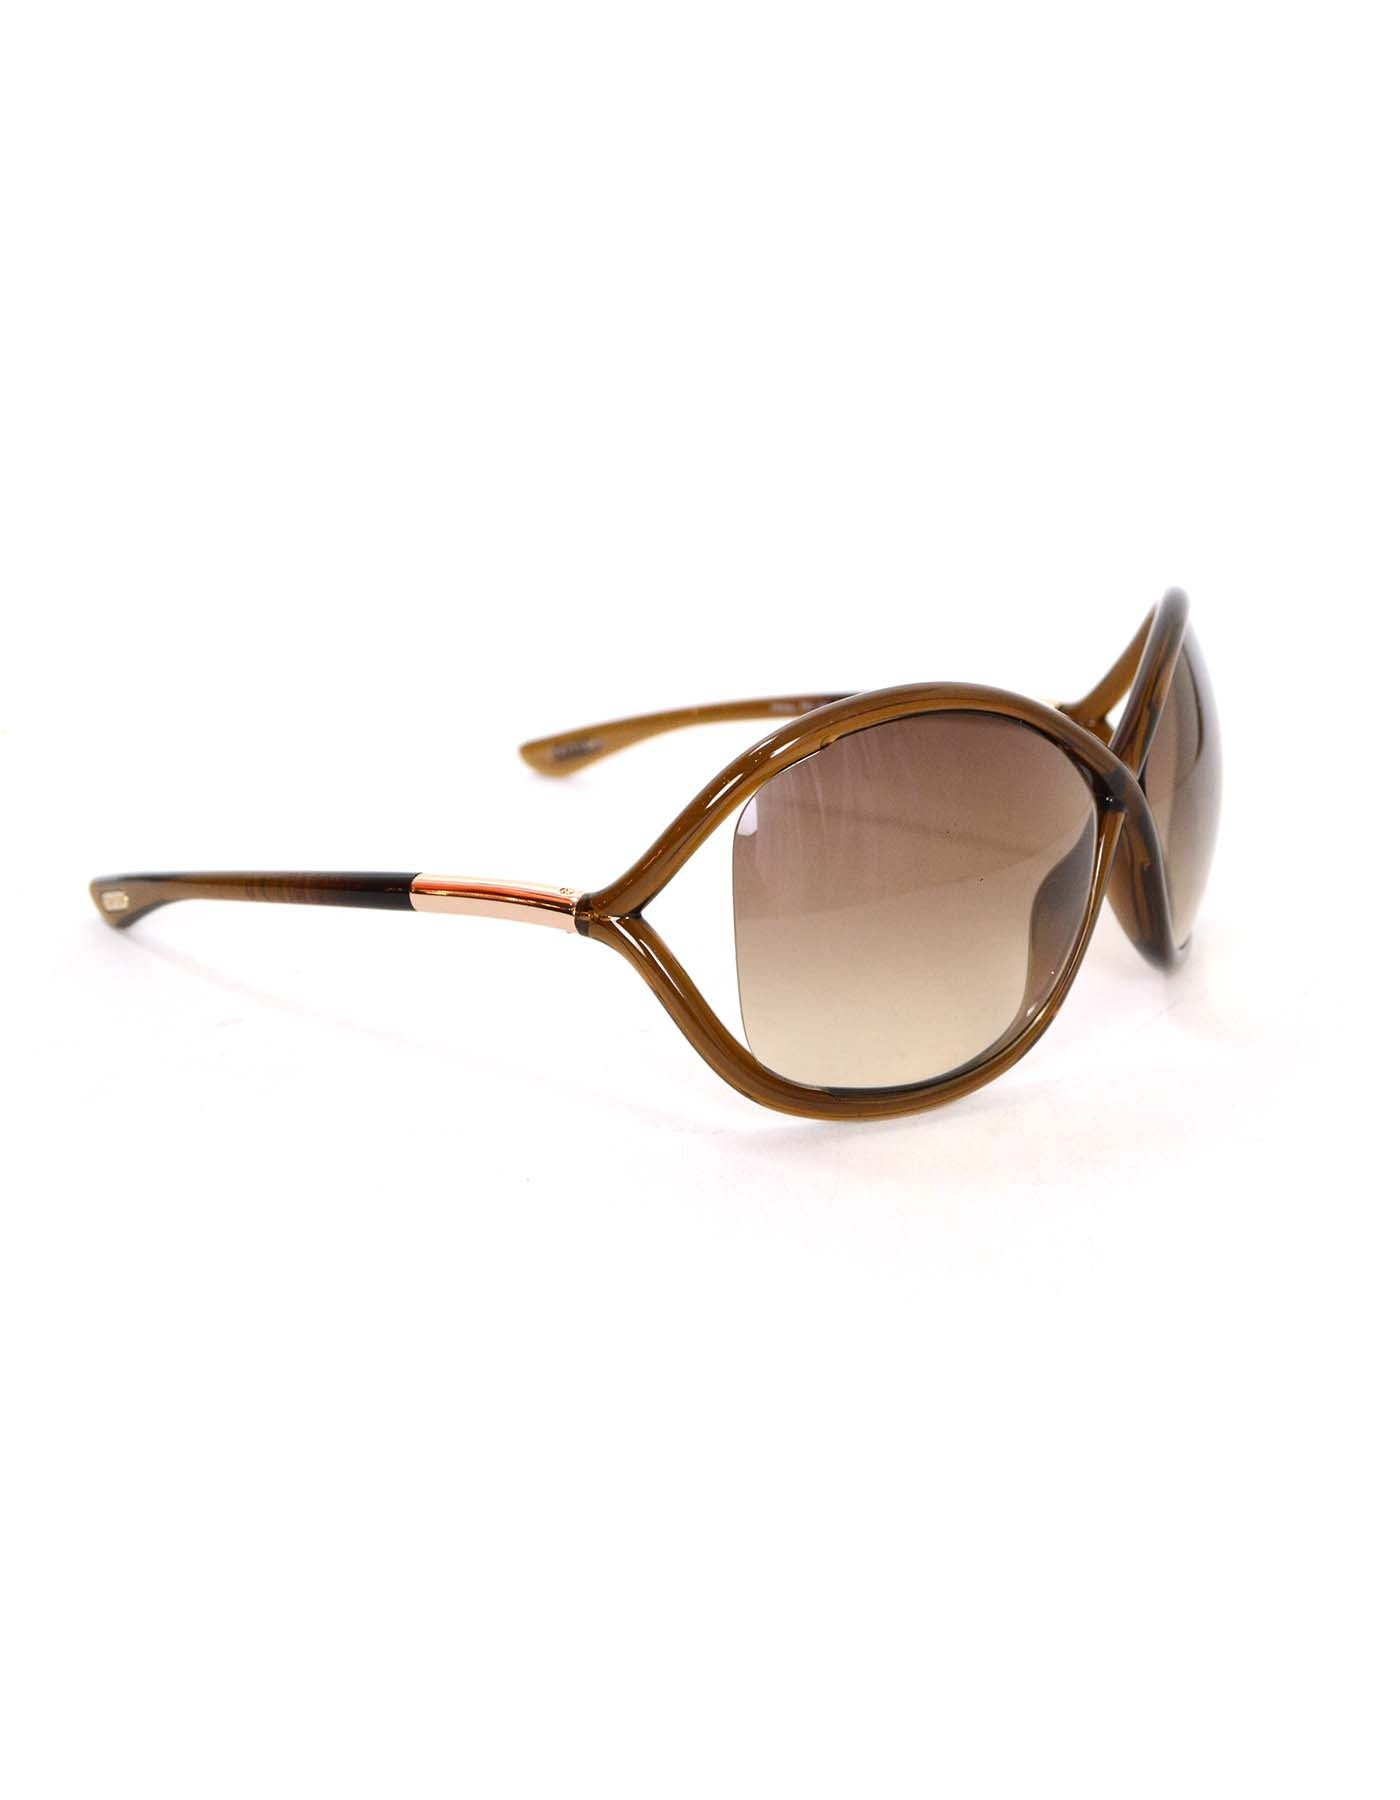 88b1210296 Tom Ford Brown Oversized  Whitney  Sunglasses For Sale at 1stdibs